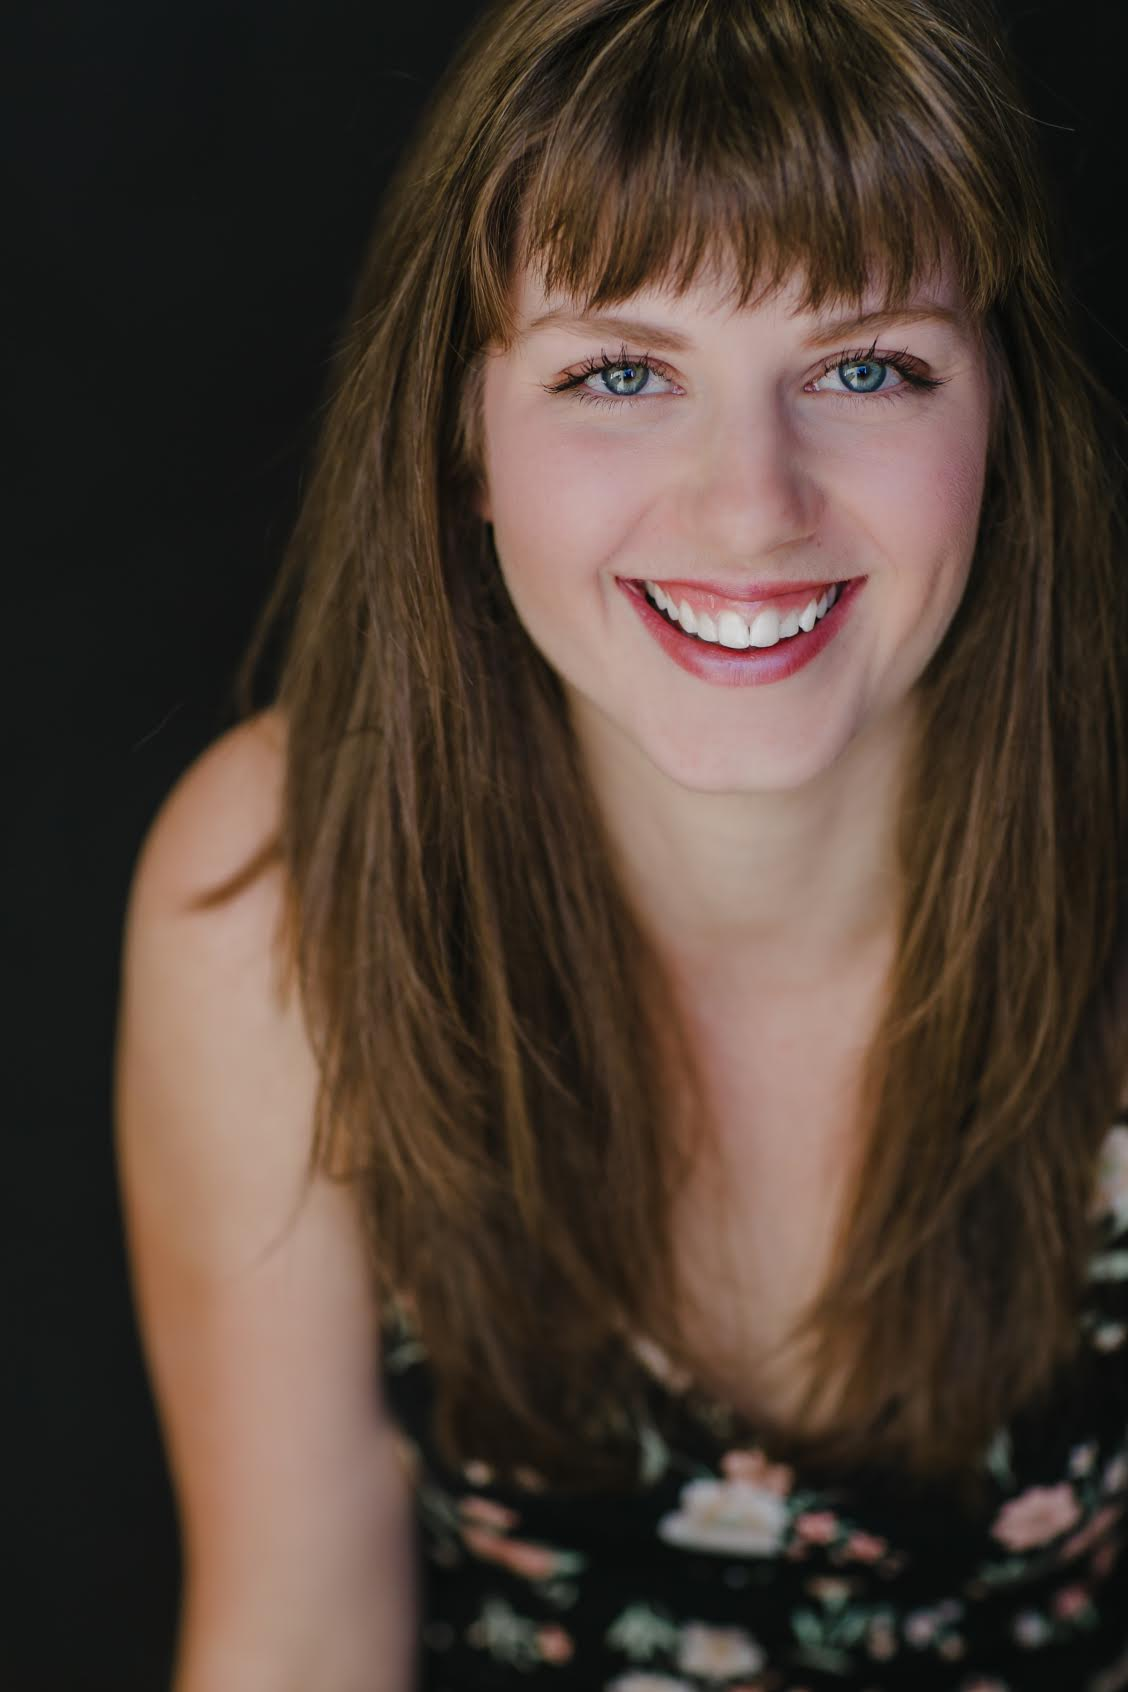 """Tessa Trach - Sound DesignerTessa studied sound in the Bachelor of Performing Arts where she was mentored by Nancy Tam. She also just assisted James Coomber on The Ridiculous Darkness with Alley Theatre. She has sound designed Lion in the Streets with Resonance Theatre and right now is working on Doubt with Gallery 7. Look for Tessa next in Circle Bright's """"To Broadway with Love"""" at Gateway Theatre in April and as Marty in Chemainus Theatre Festival's Grease. Tessa Trach is a graduate from Studio 58."""